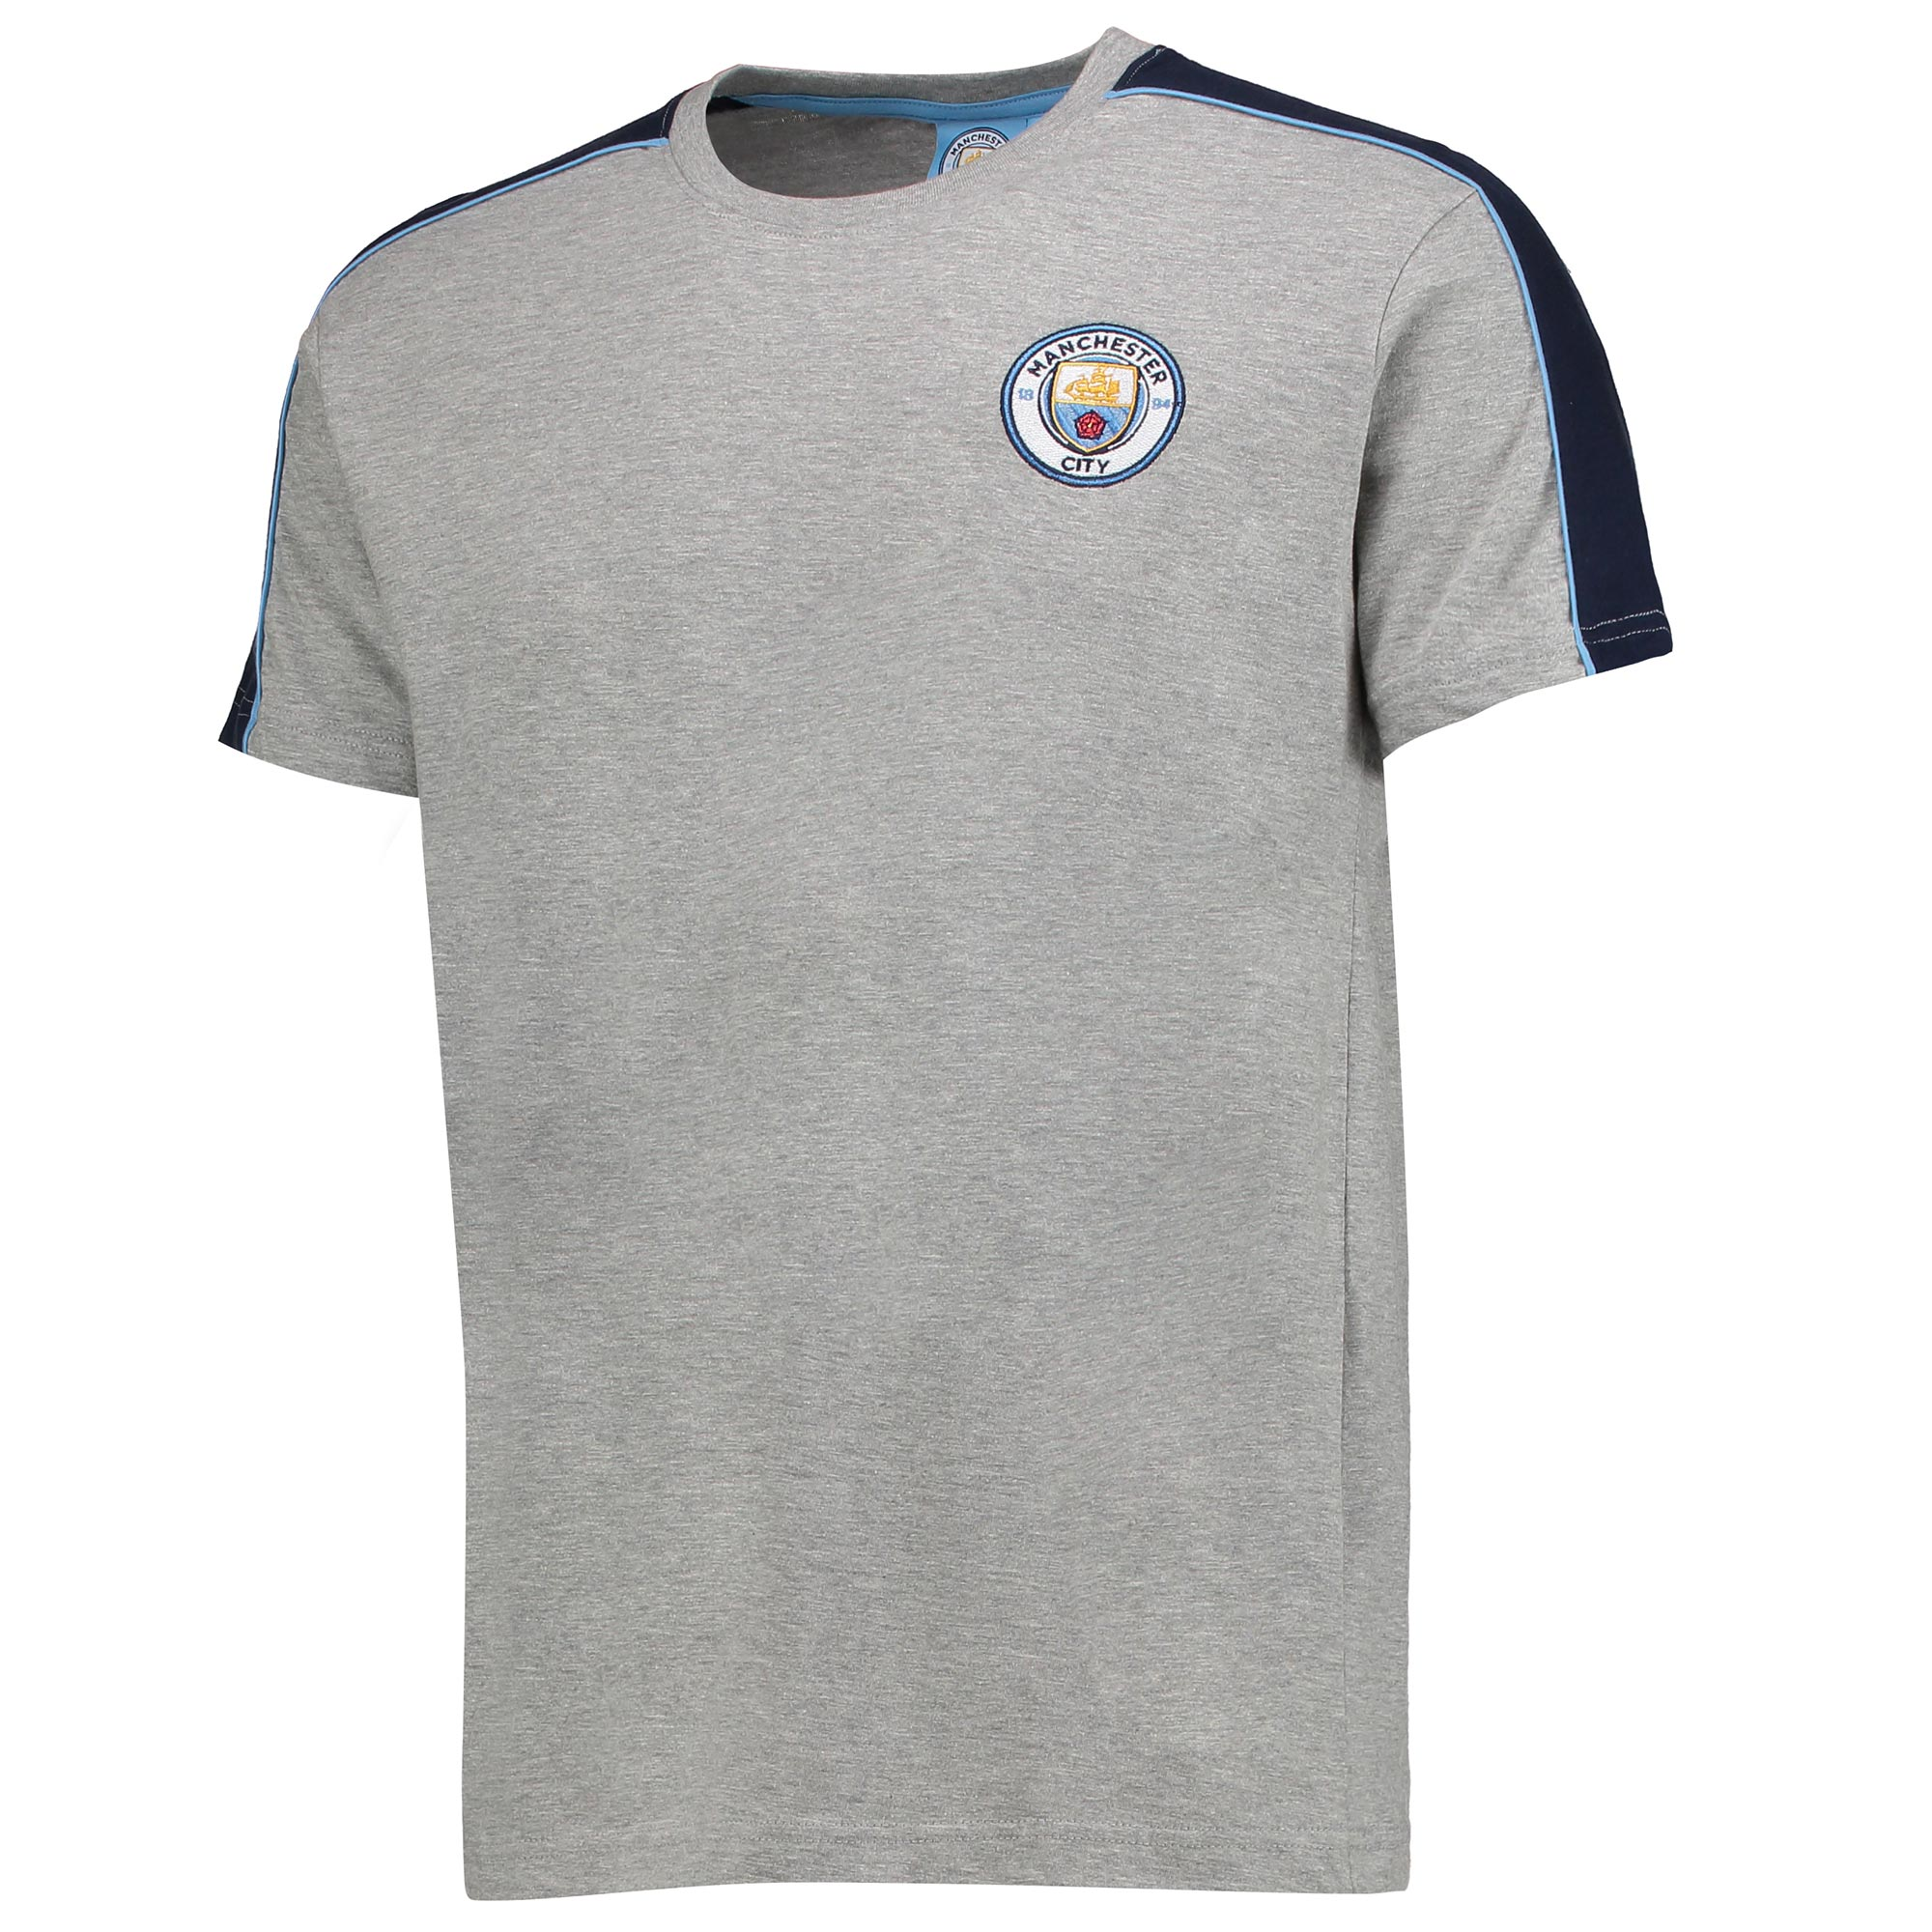 Manchester City T-Shirt - Grey Marl